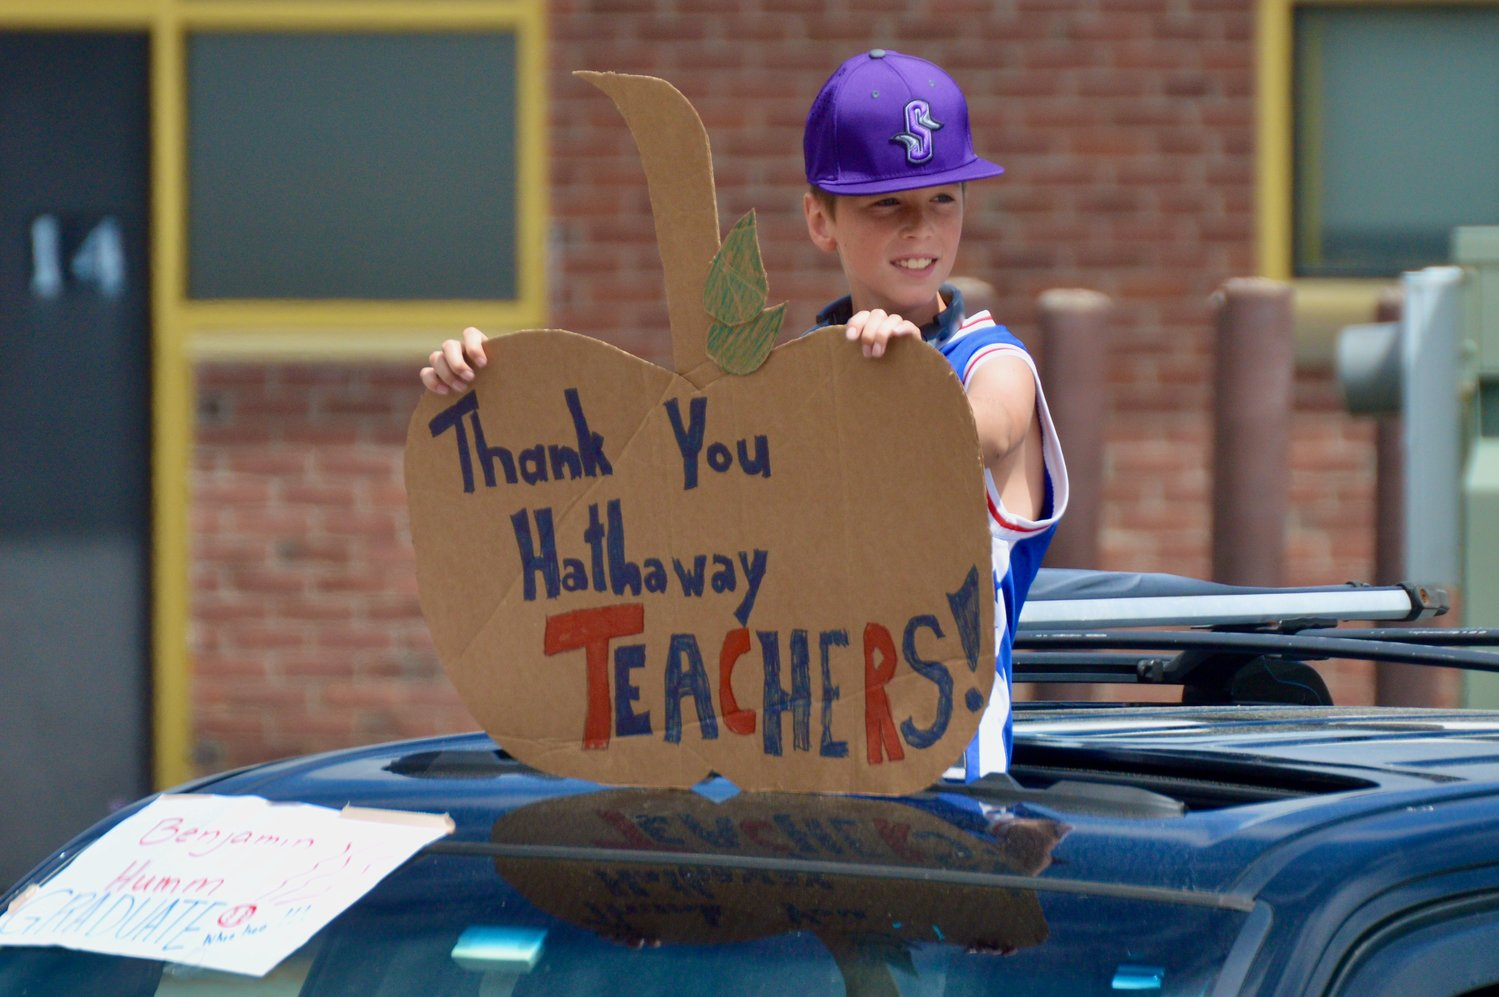 Ben Humm's sign said it all during Thursday's parade for fourth-graders leaving Hathaway School.